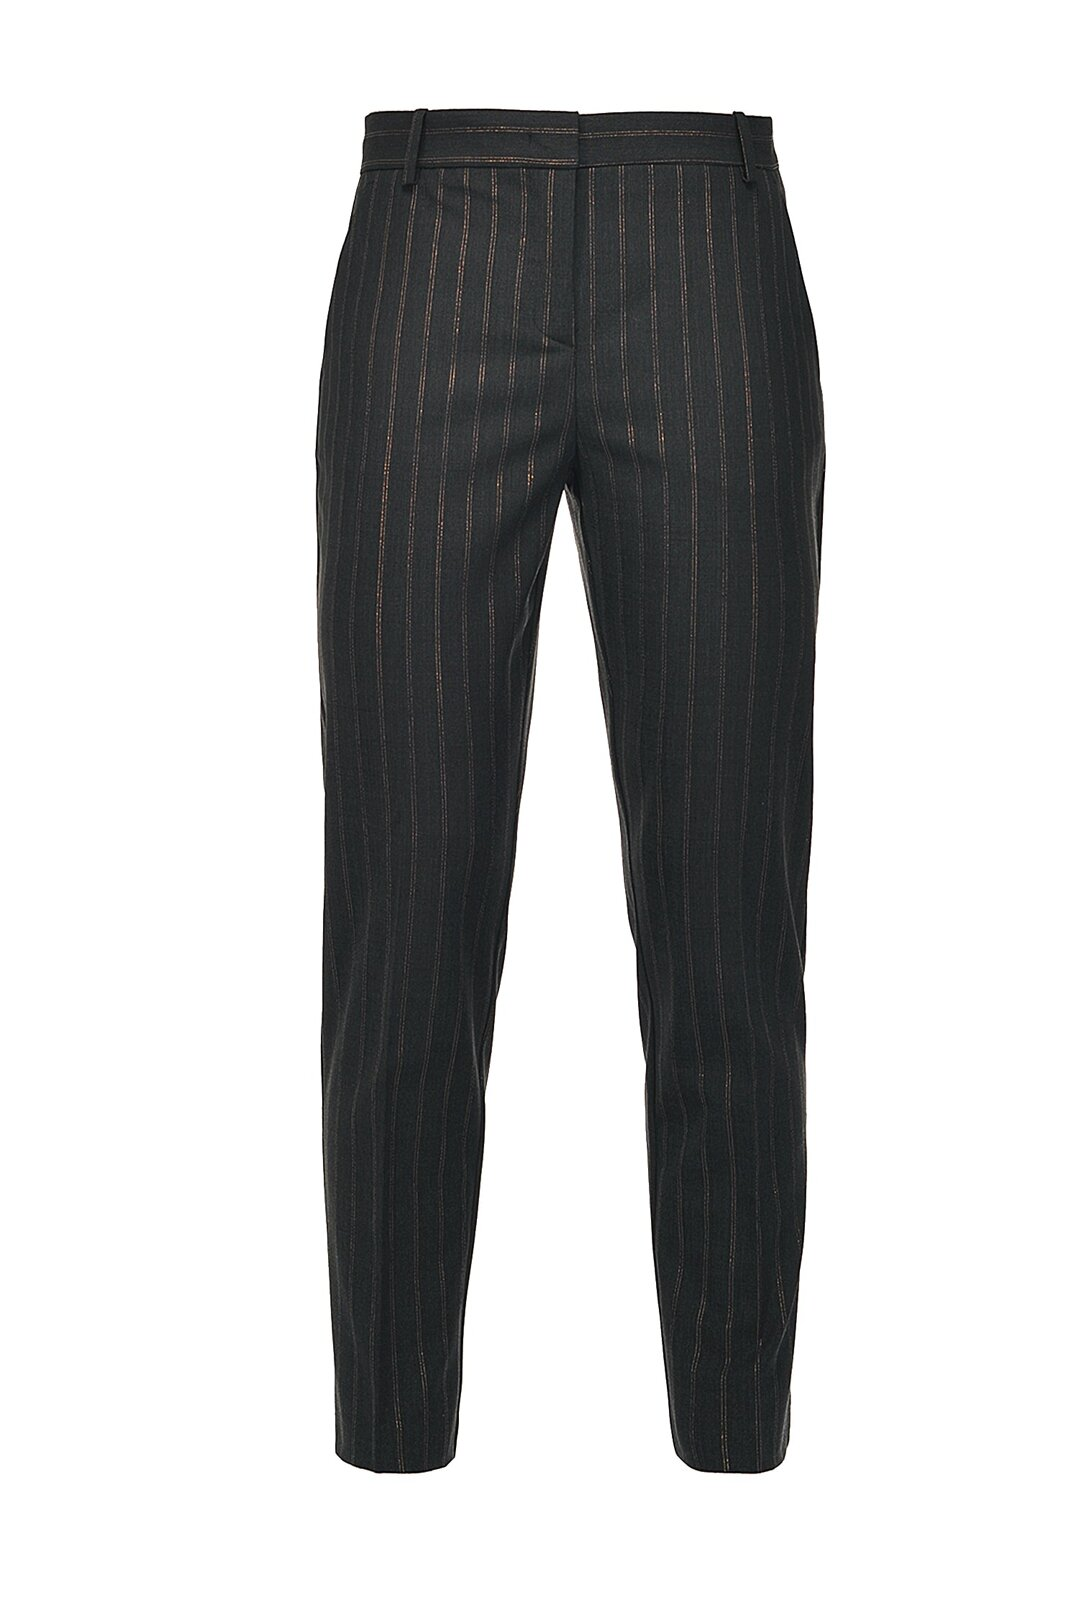 Lurex Pinstripe Cigarette-Fit Trousers - Pinko